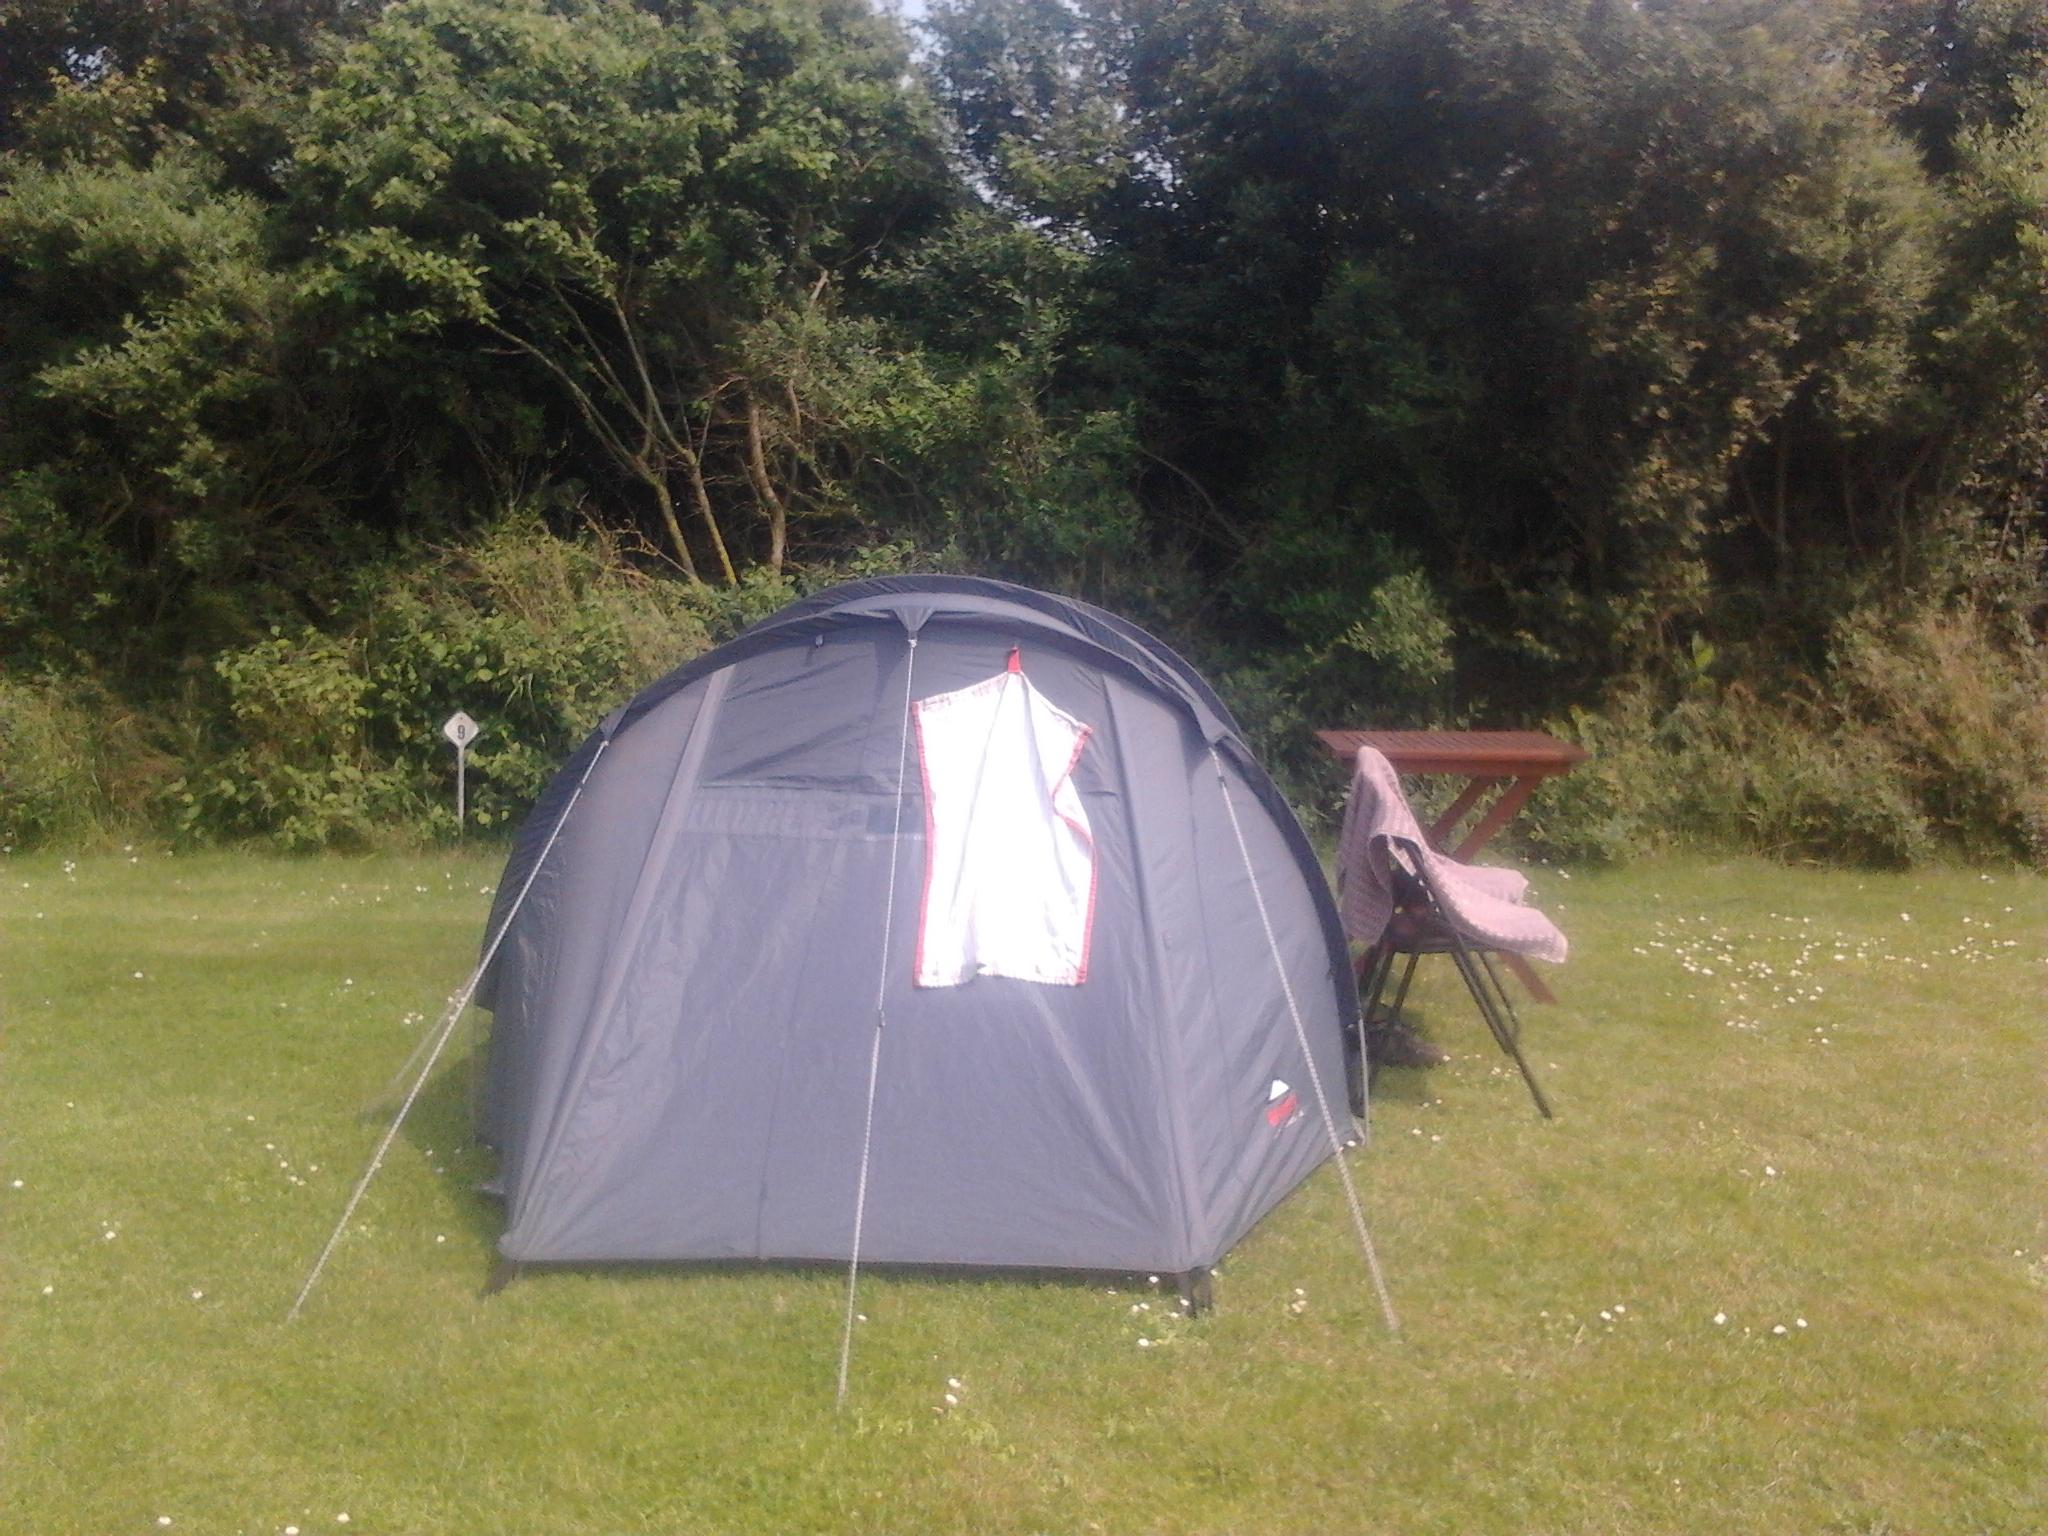 Tent Until Max. 8M² And Max 1.50 High Without Electricity